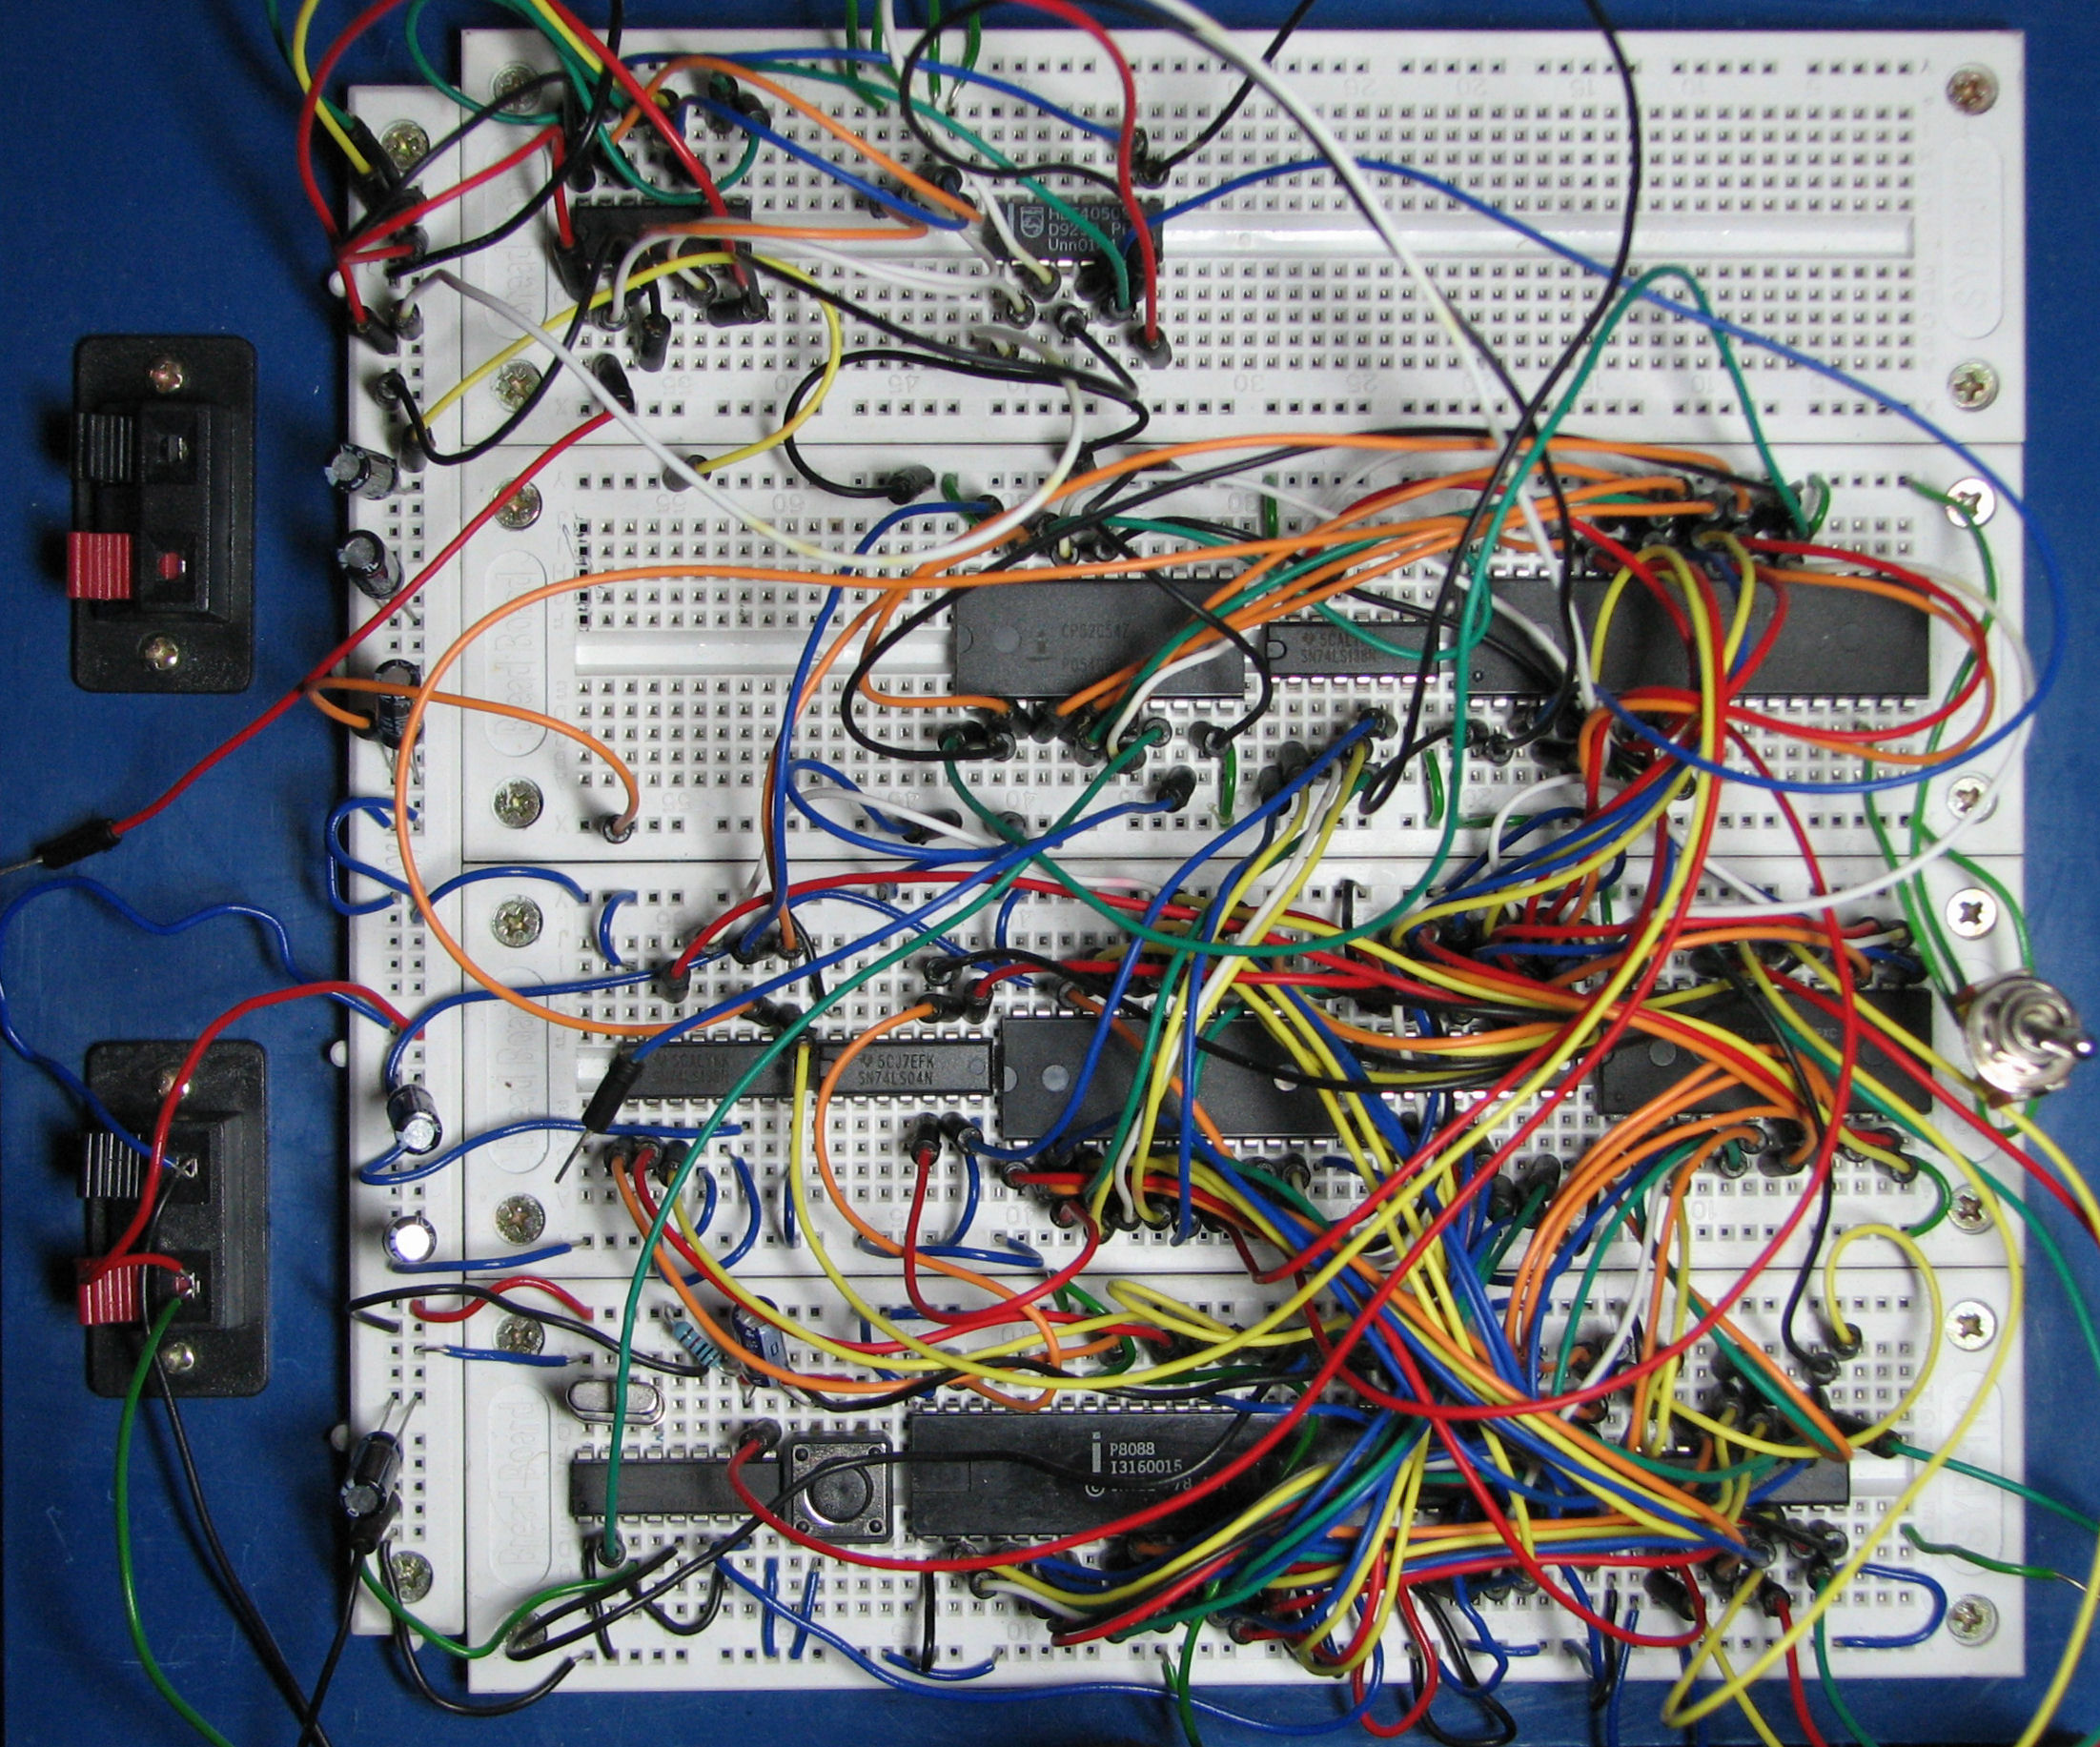 Prototyping A Breadboard Advantage And Limitation Rimsky Cheng Breadboards Electronics Images Personal Site